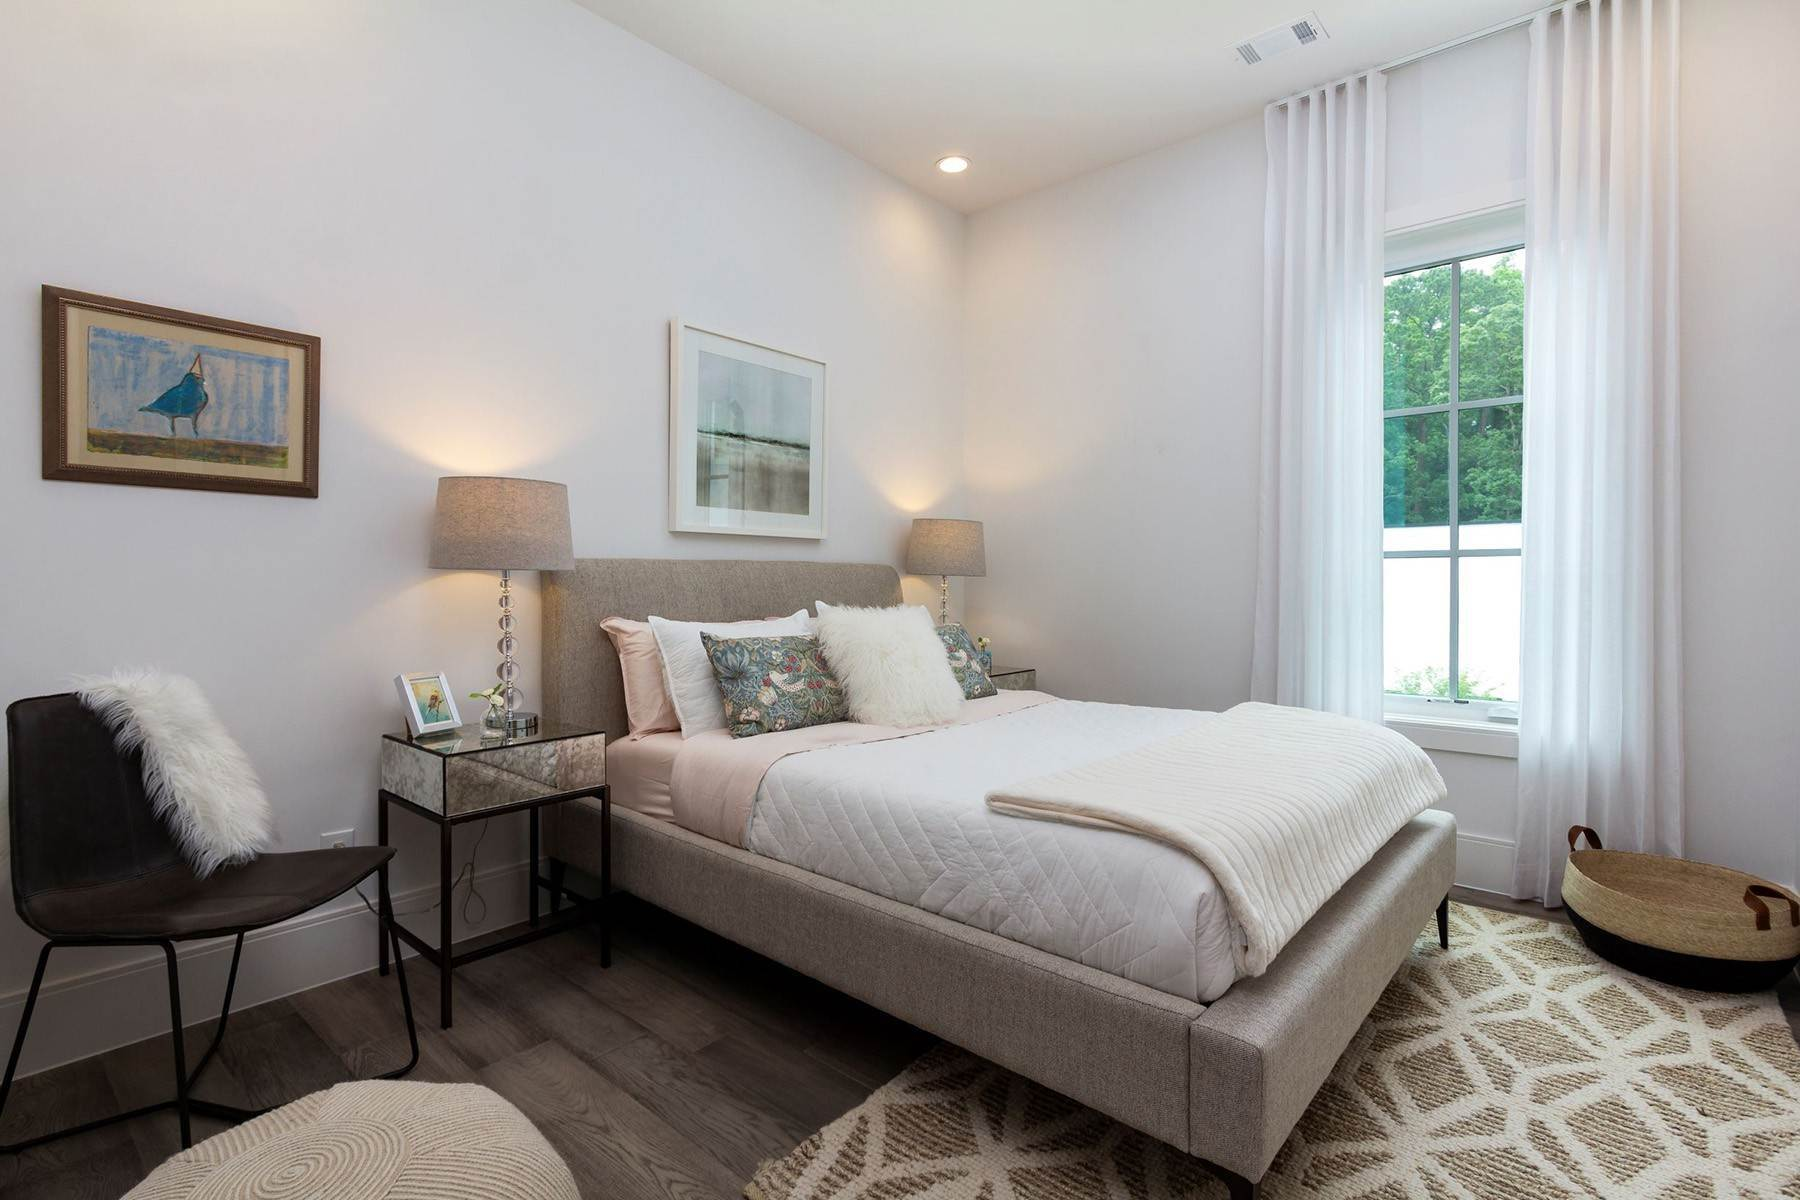 11. Condominiums for Sale at Elegant Home With Ample Storage And Outdoor Living Space 1200 Ponce de Leon Avenue NE, No. A6 Atlanta, Georgia 30306 United States